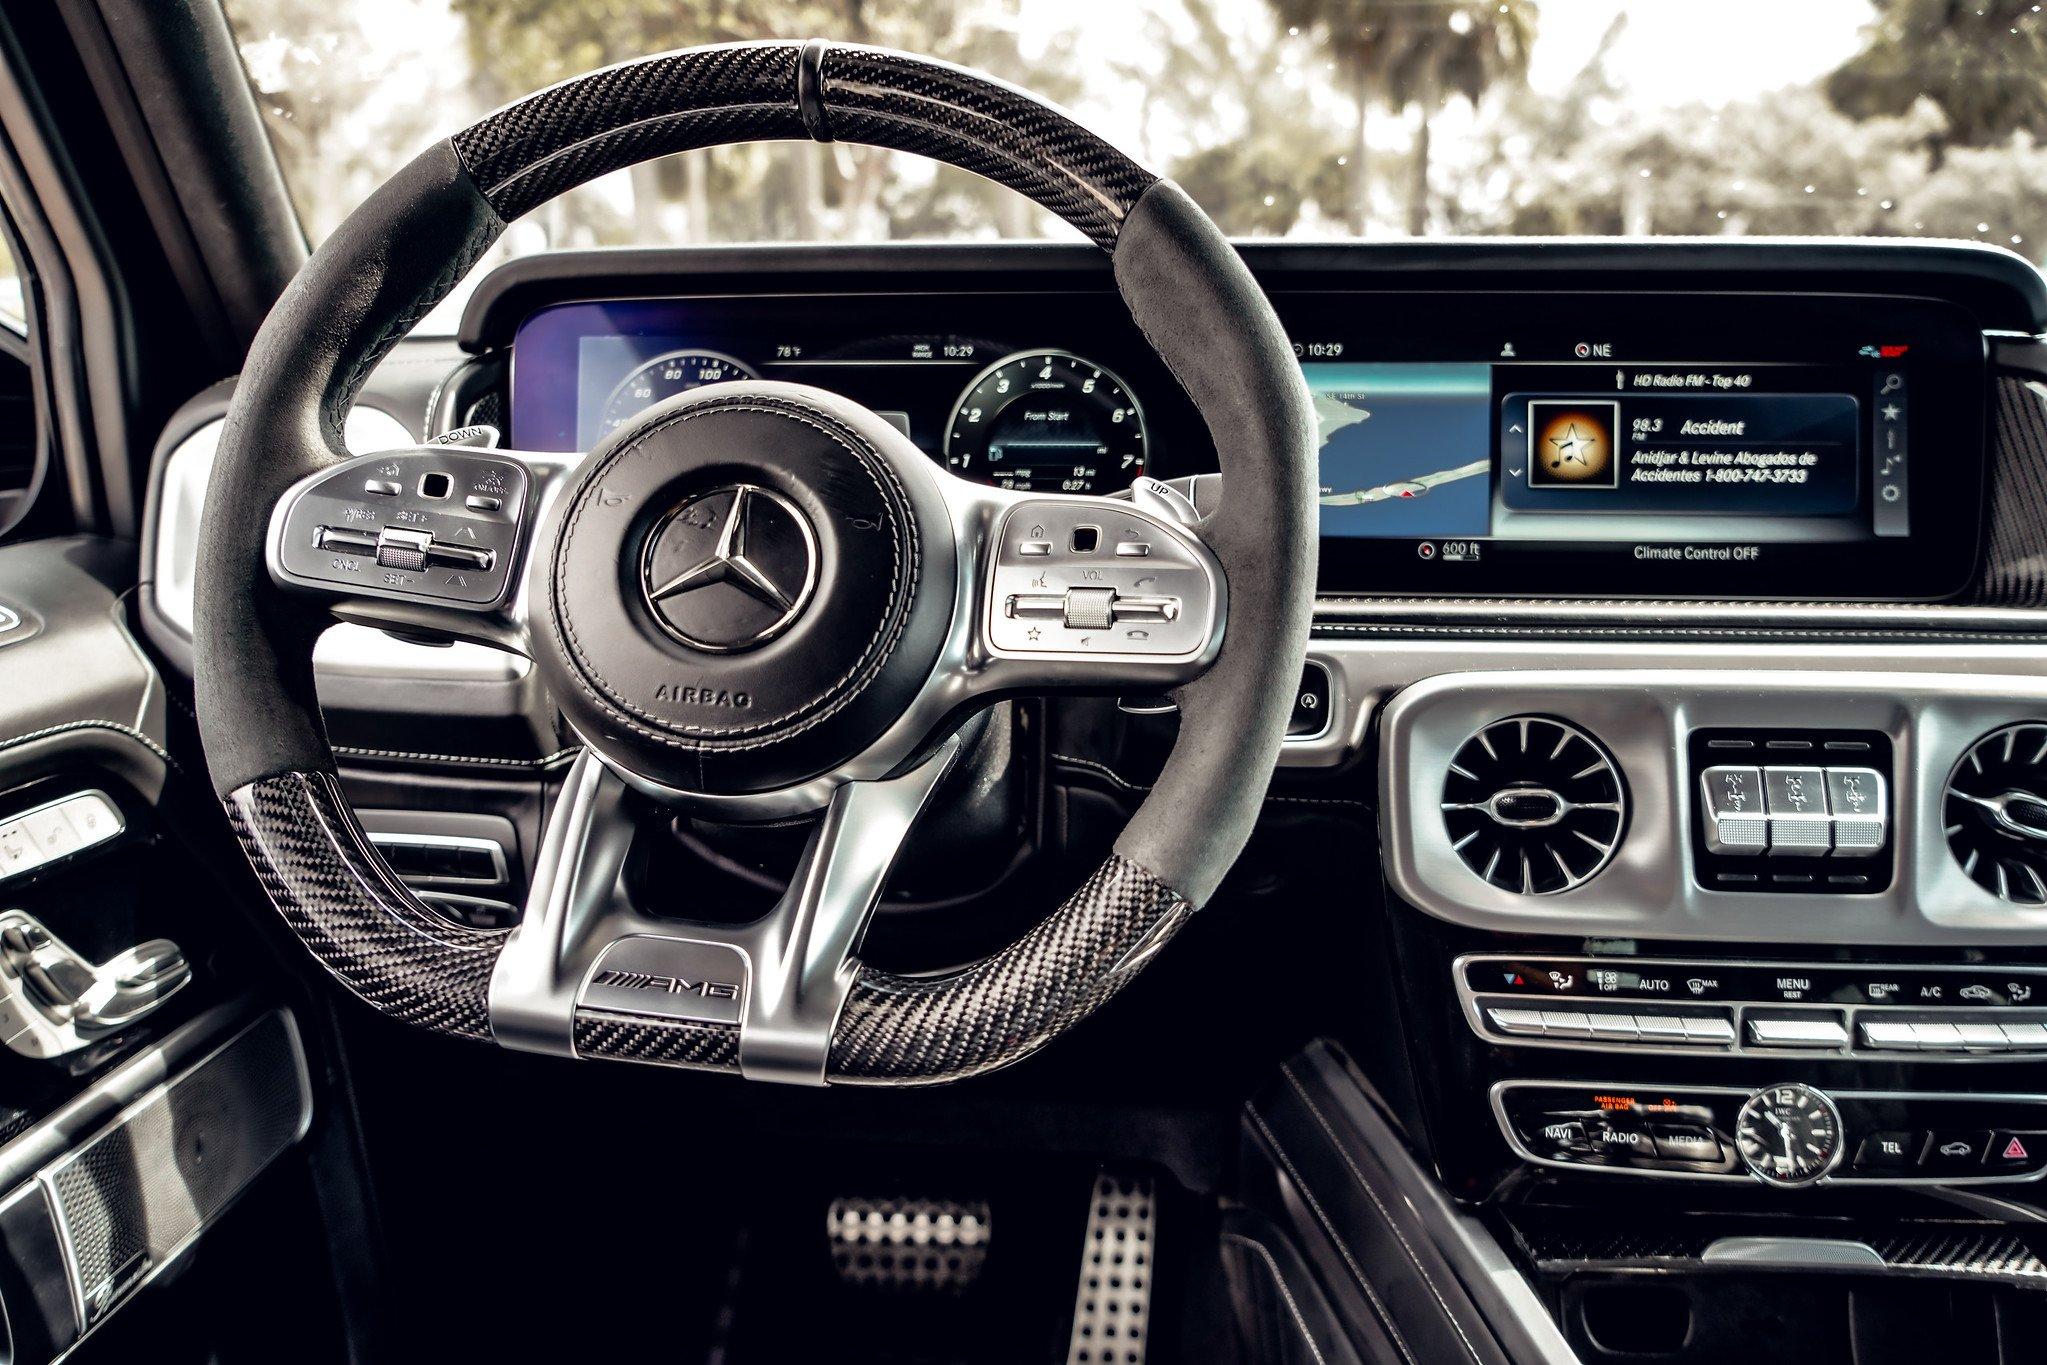 Image #9 of our  Mercedes AMG G63    In Miami Fort Lauderdale Palm Beach South Florida